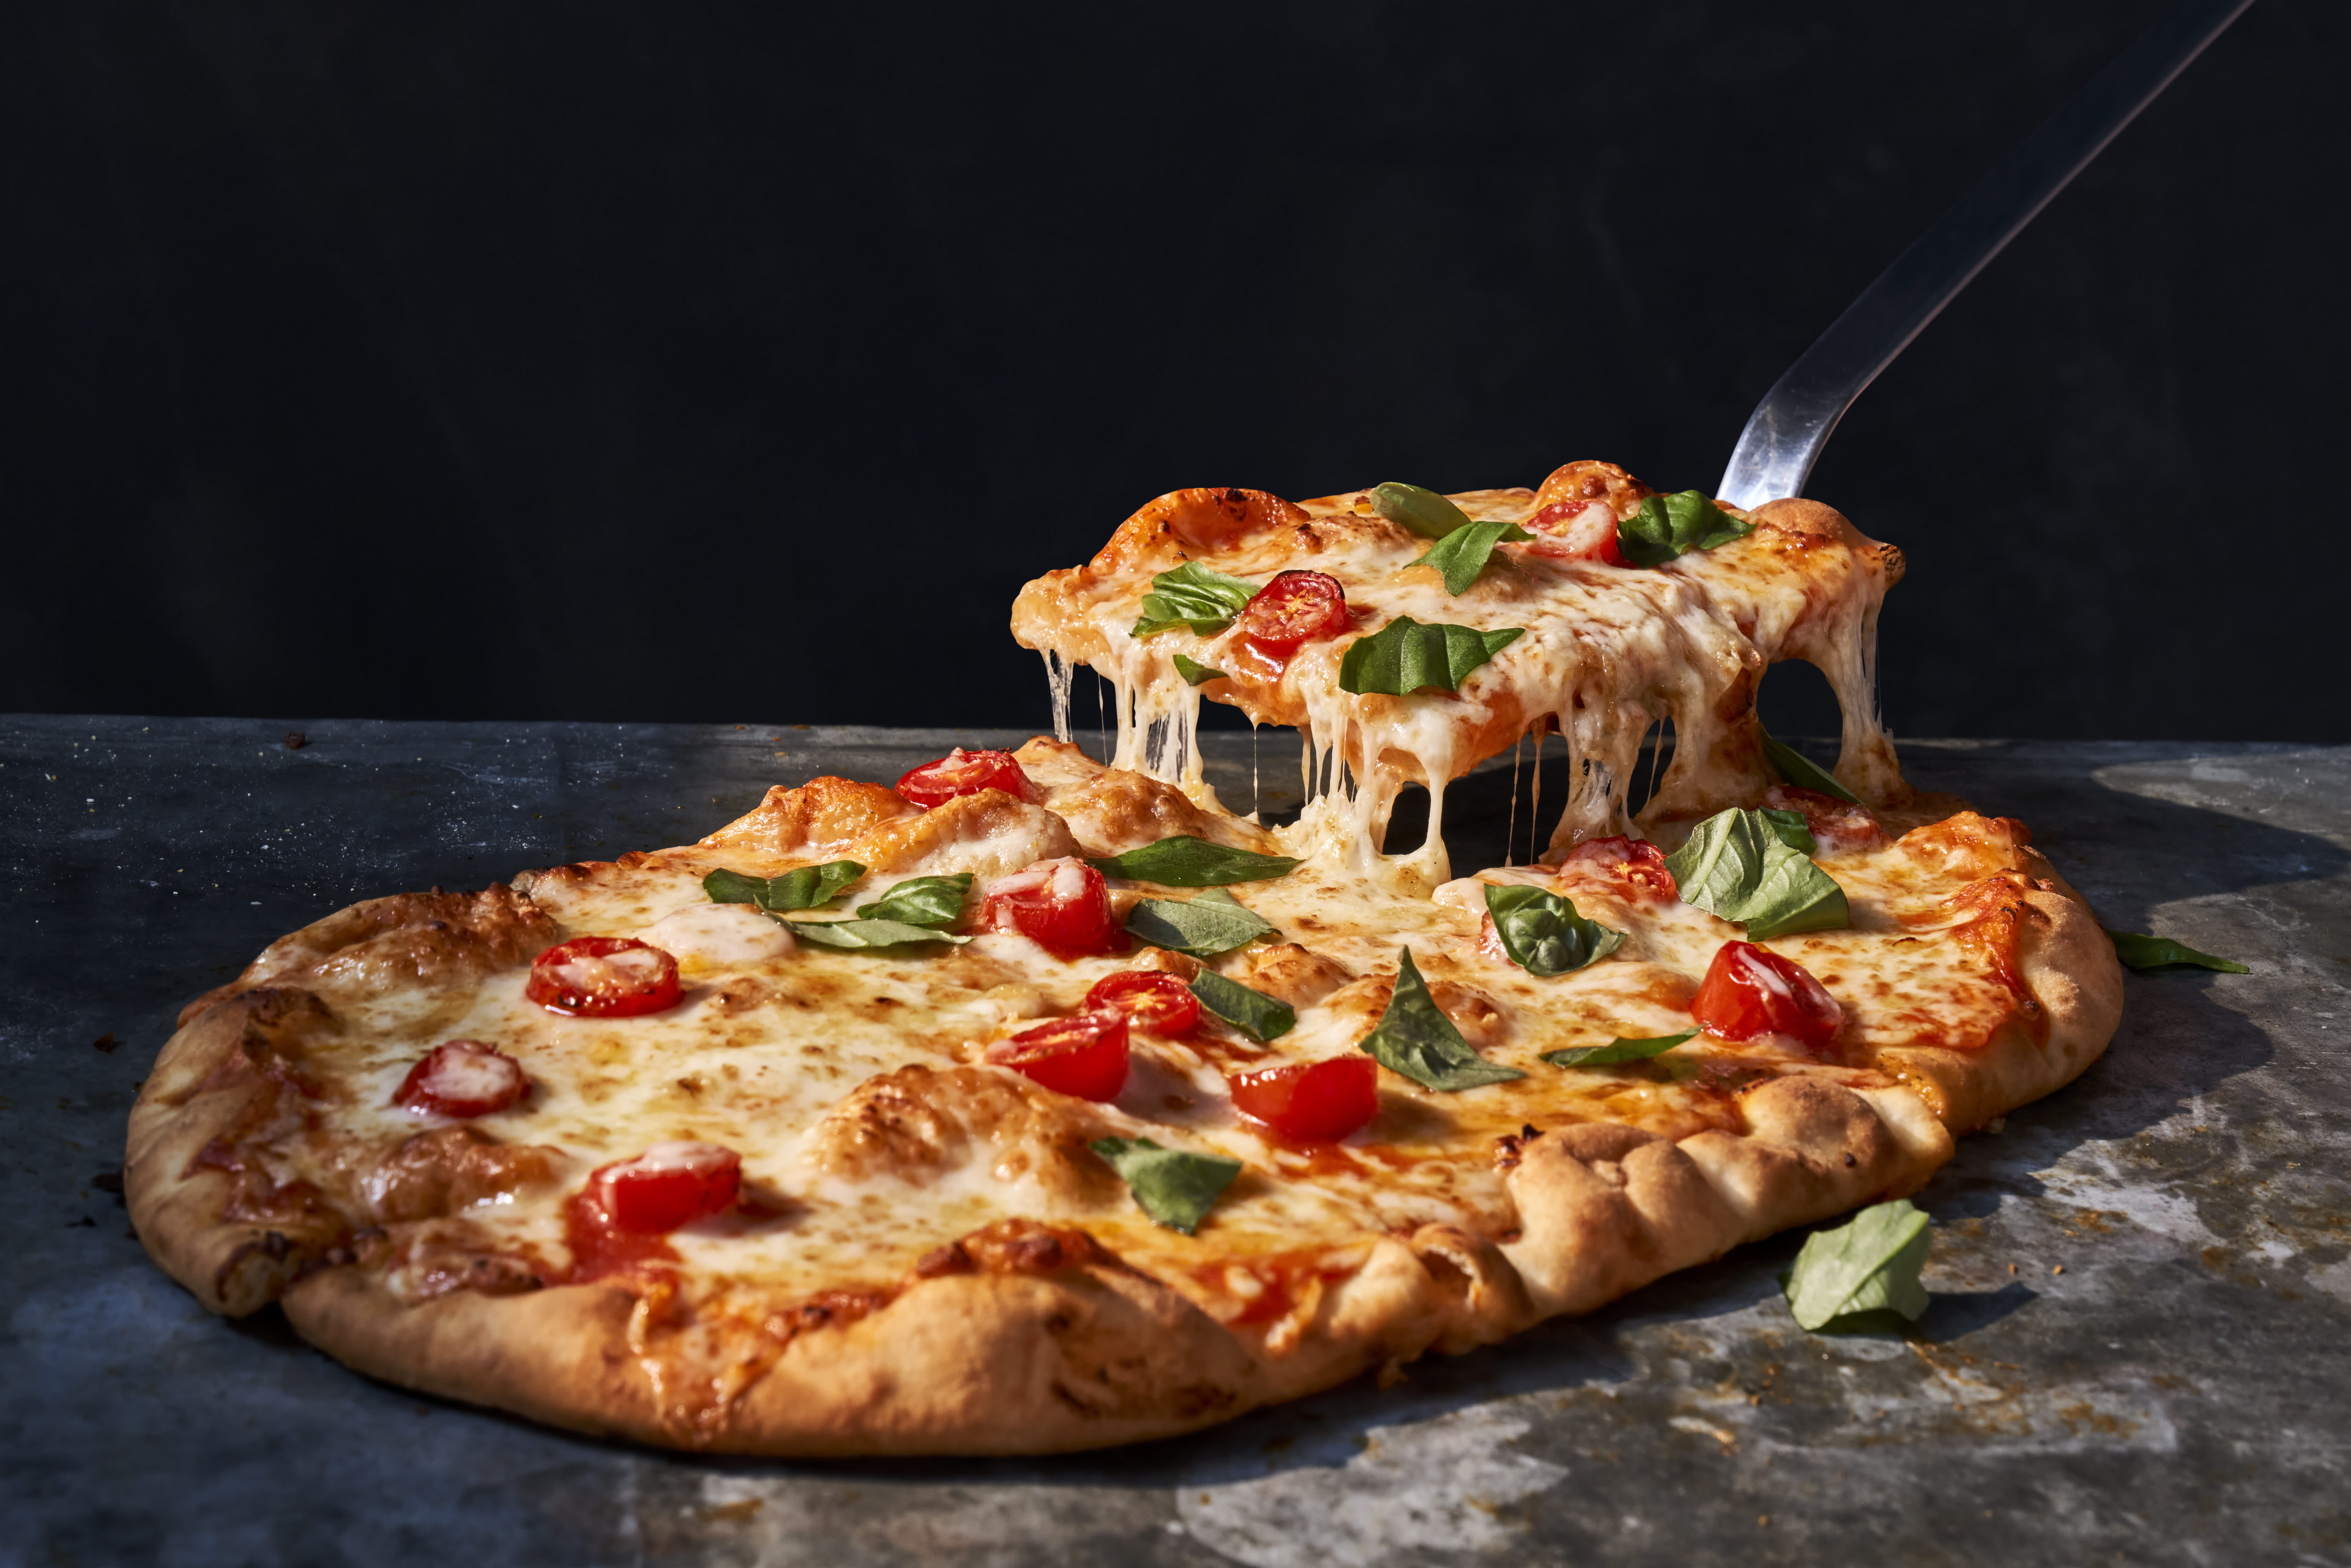 Panera Bread adds pizza to menus as customers order more delivery and takeout